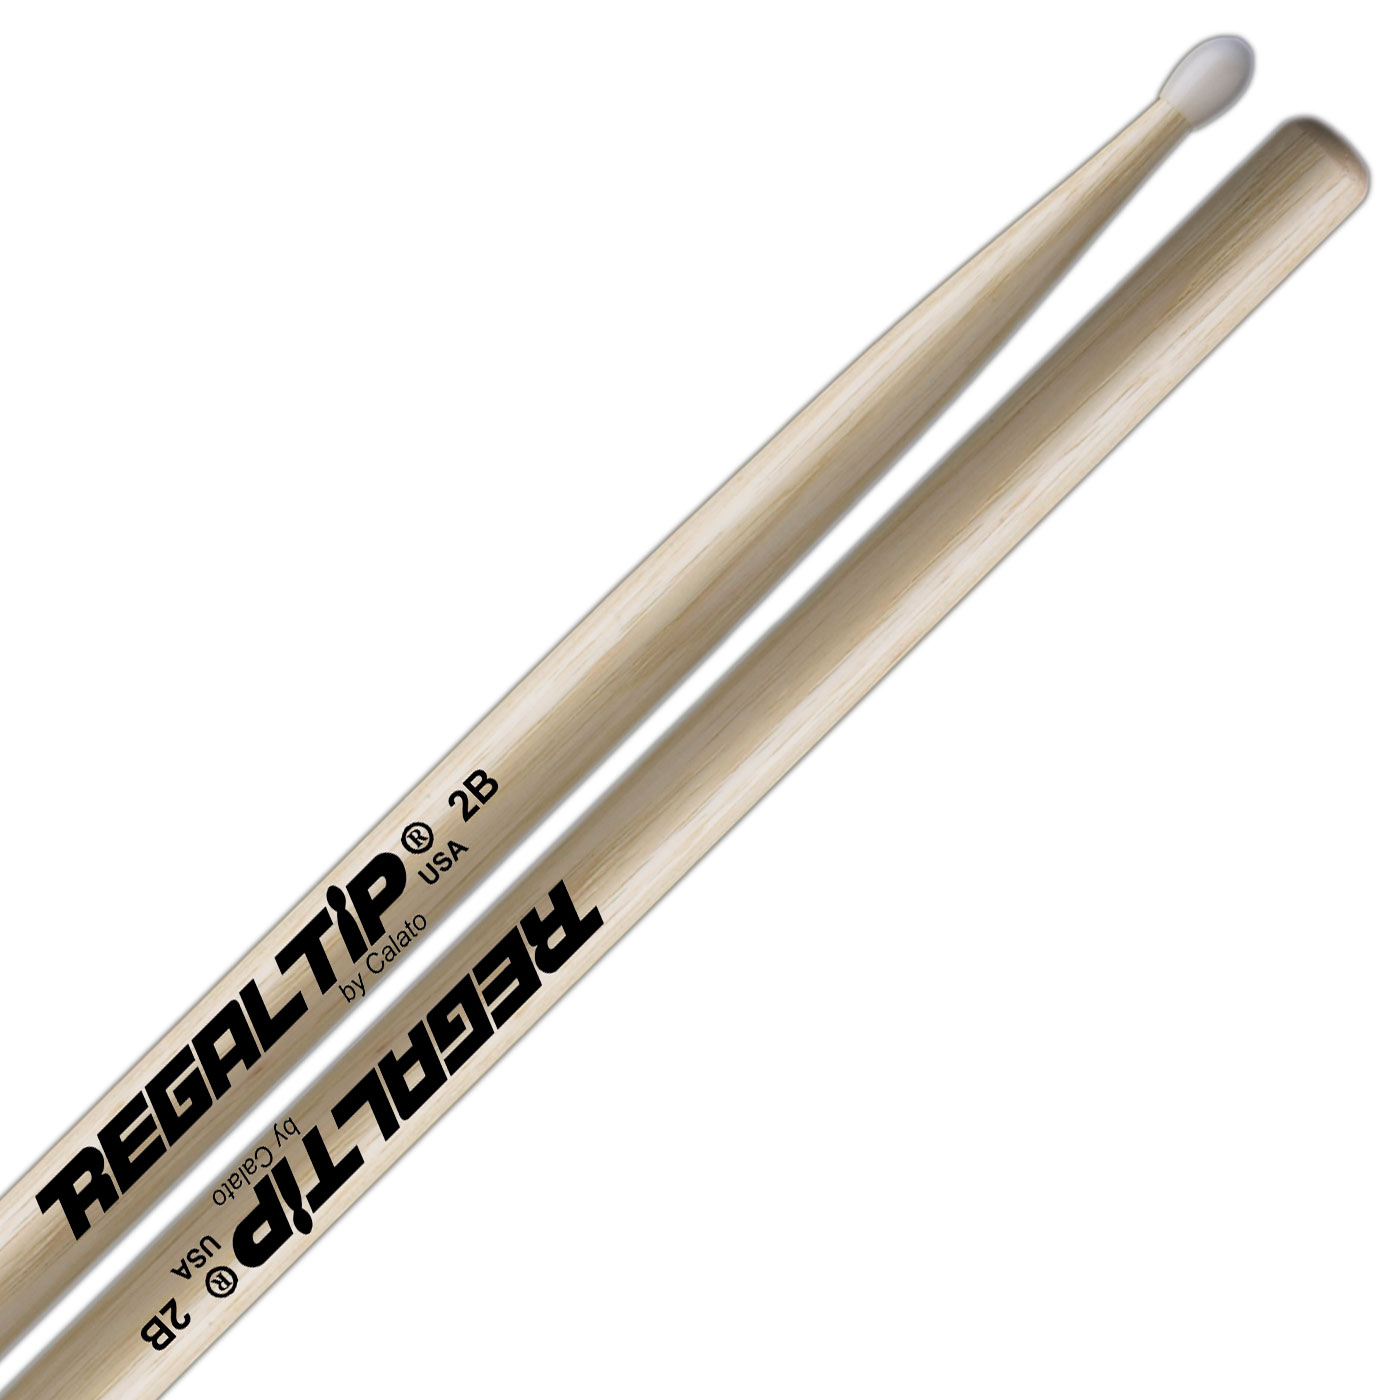 Regal Tip Classic Hickory 2B Drumsticks with Nylon Tip